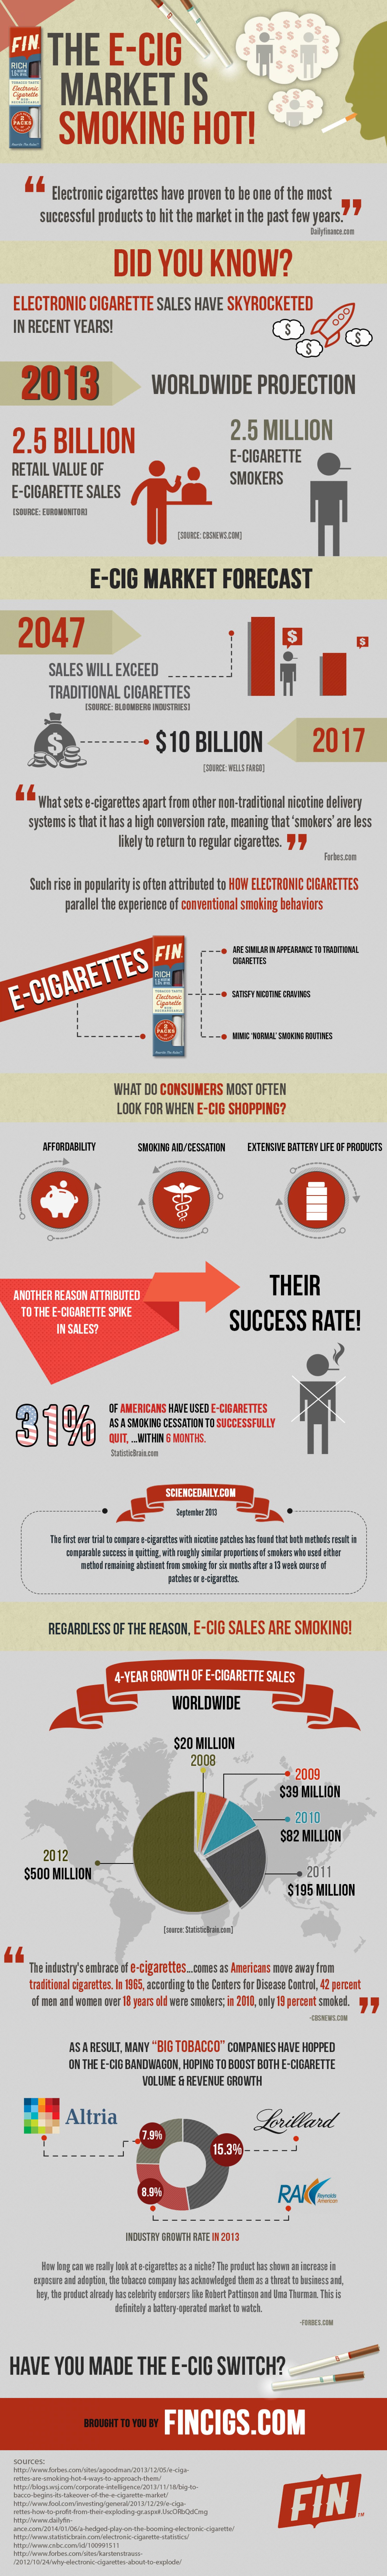 THE E-CIG MARKET IS SMOKING HOT! Infographic